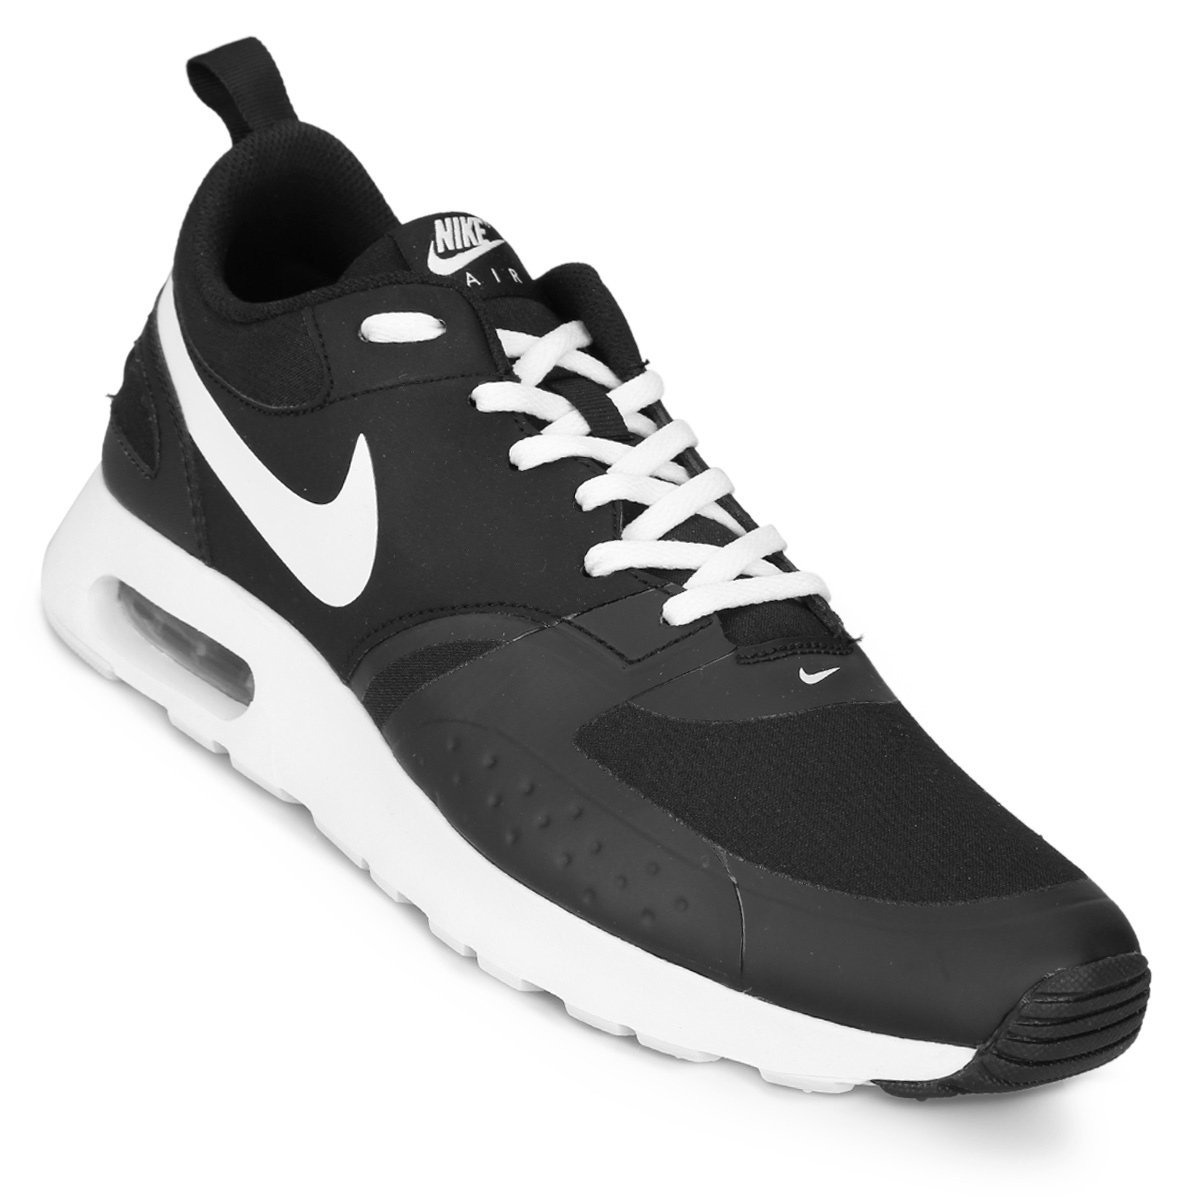 Zapatillas Nike Air Max Vision Negro Y Blanco